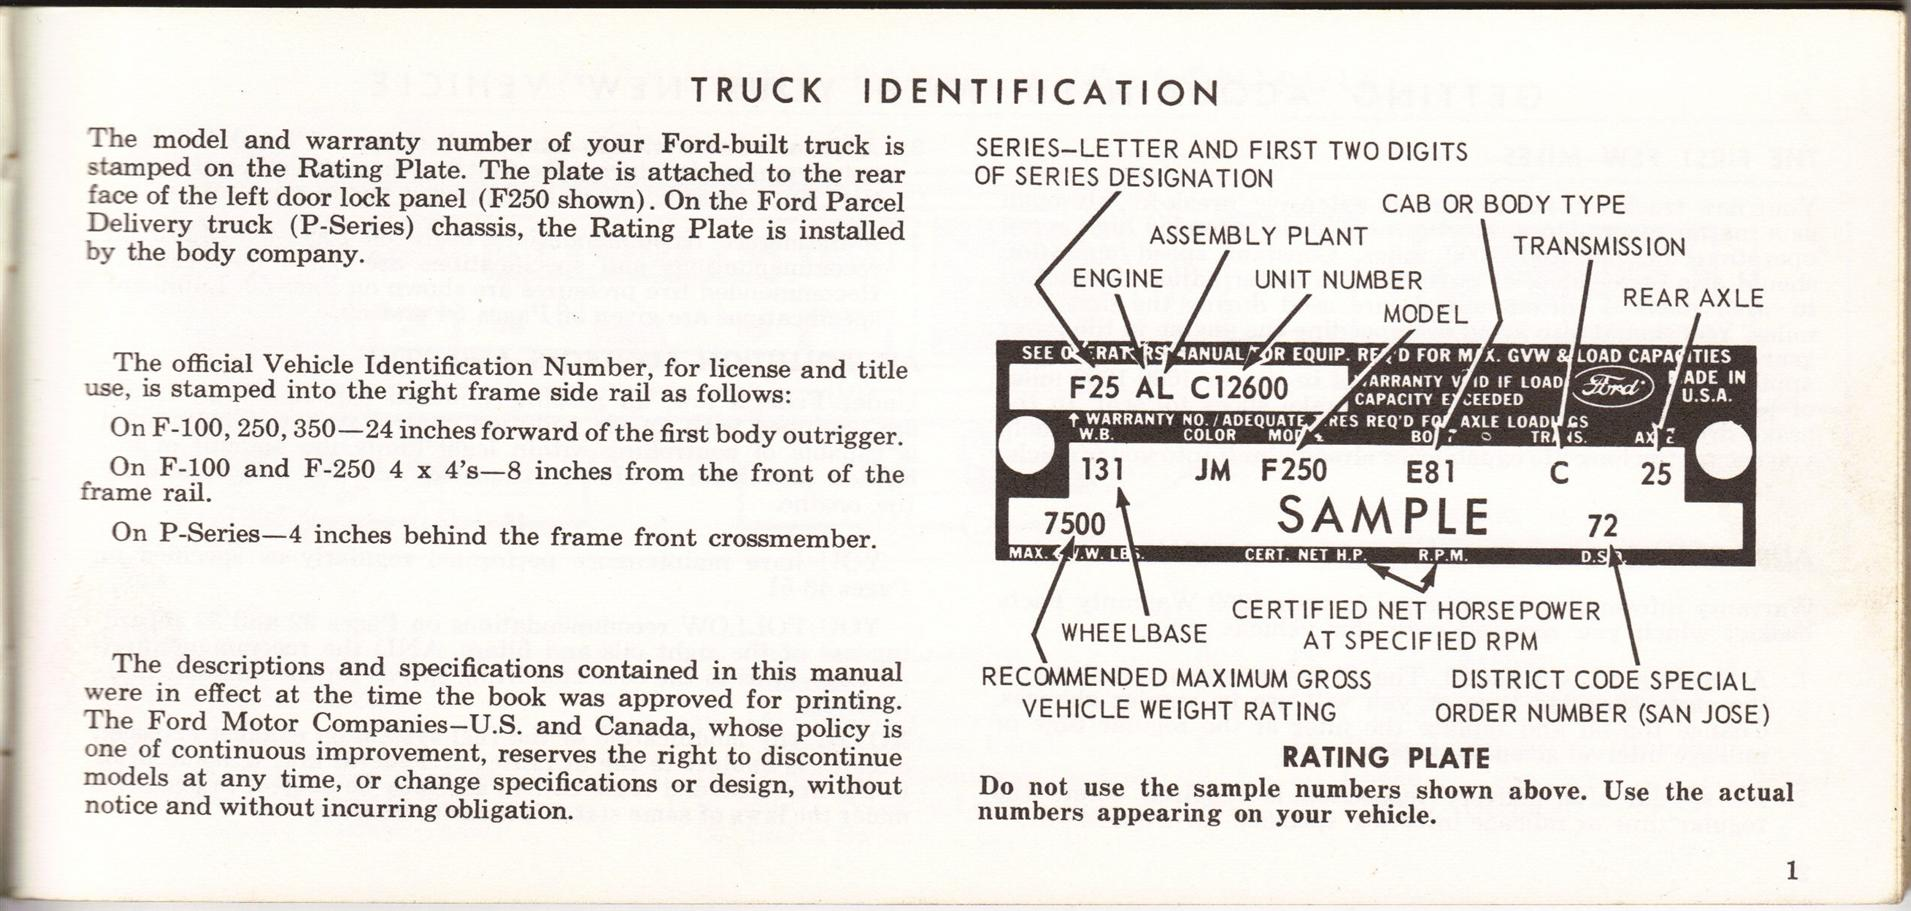 1969 Ford Truck Owners Manual Pg01